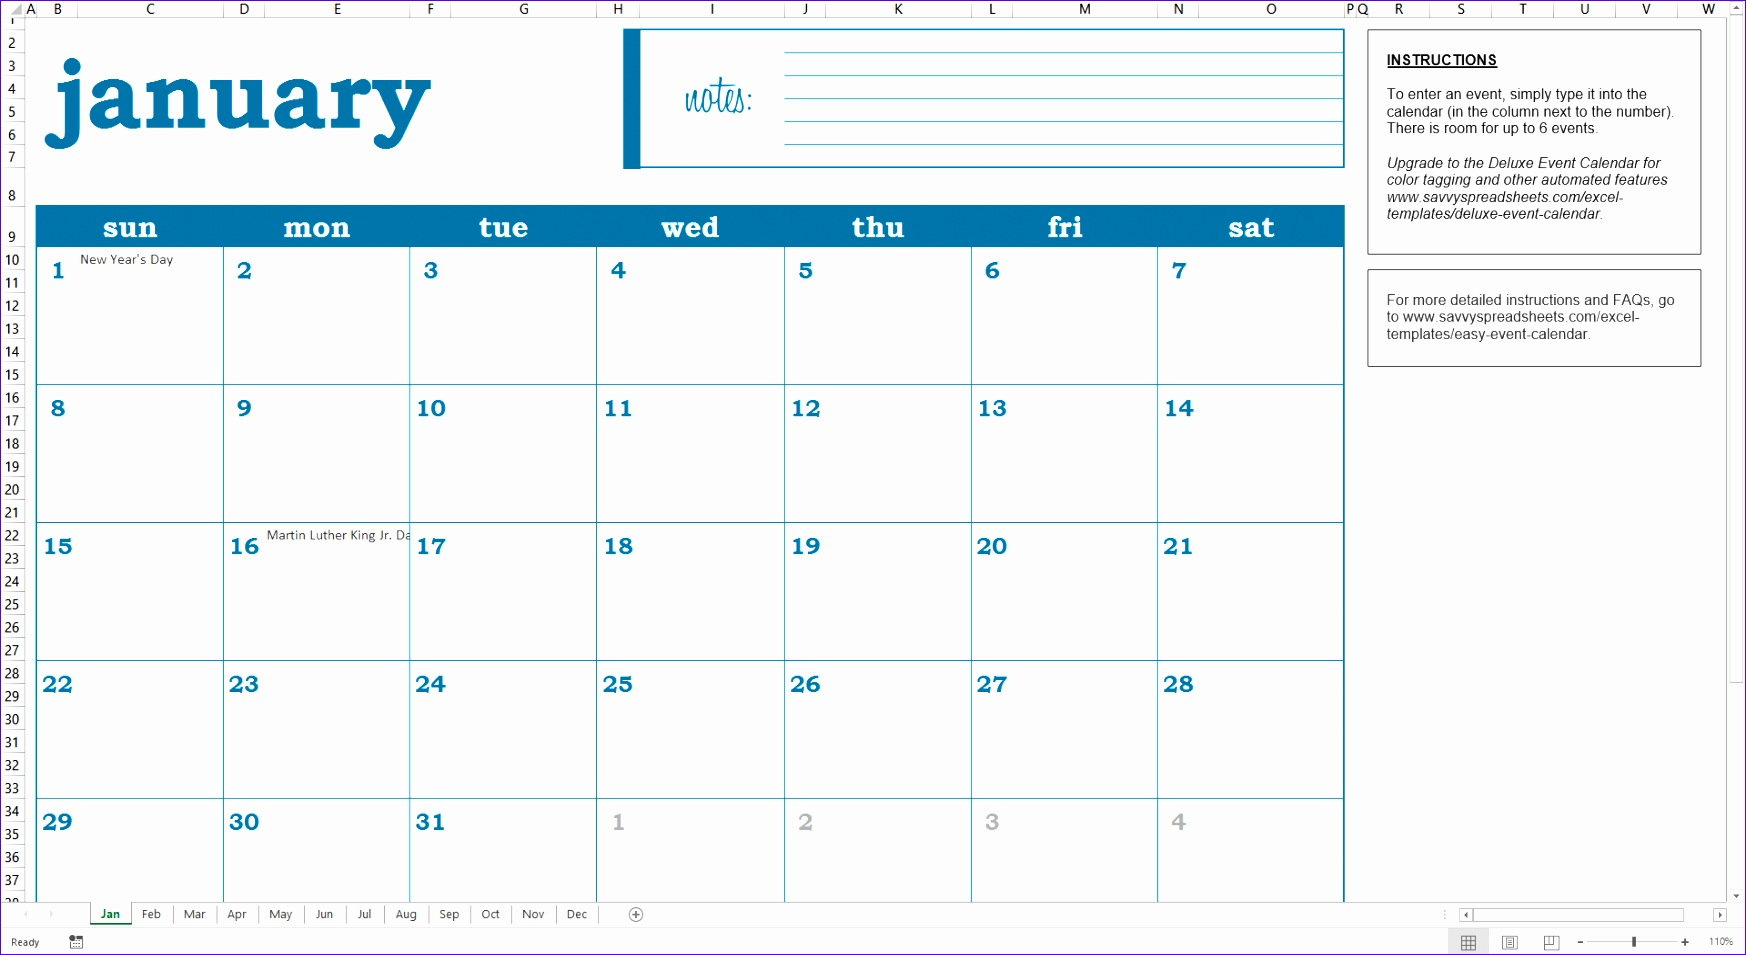 Free Excel Business Templates Gvsba Fresh Easy event Calendar Excel Template Savvy Spreadsheets 19191039